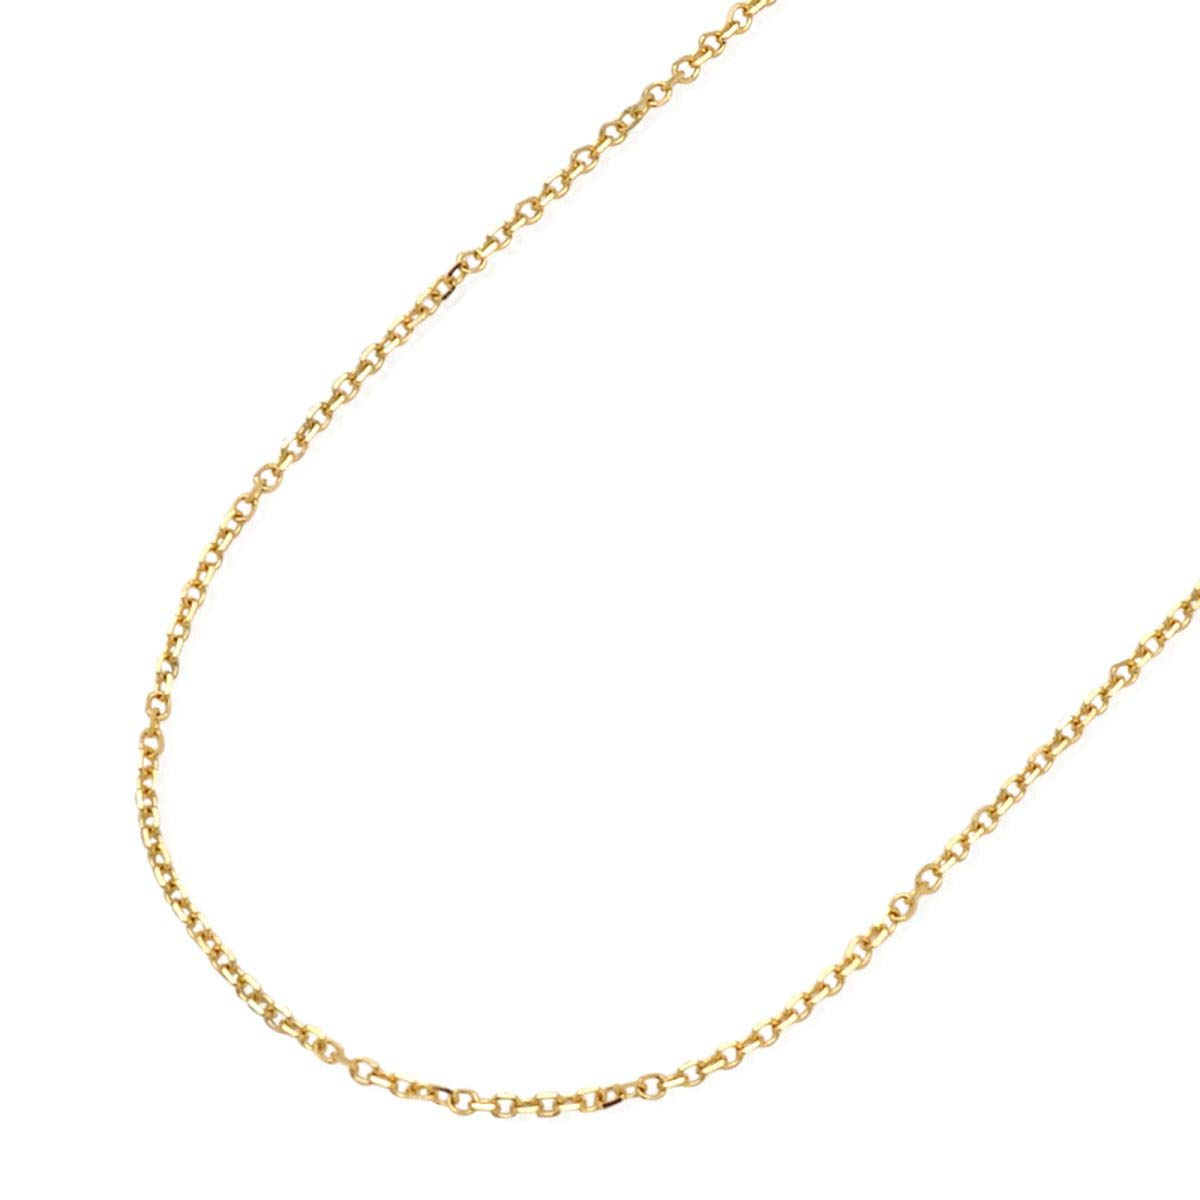 14k Tri-Color Gold Boy Girl Twins Textured Pendant Cable Chain Necklace 16-18